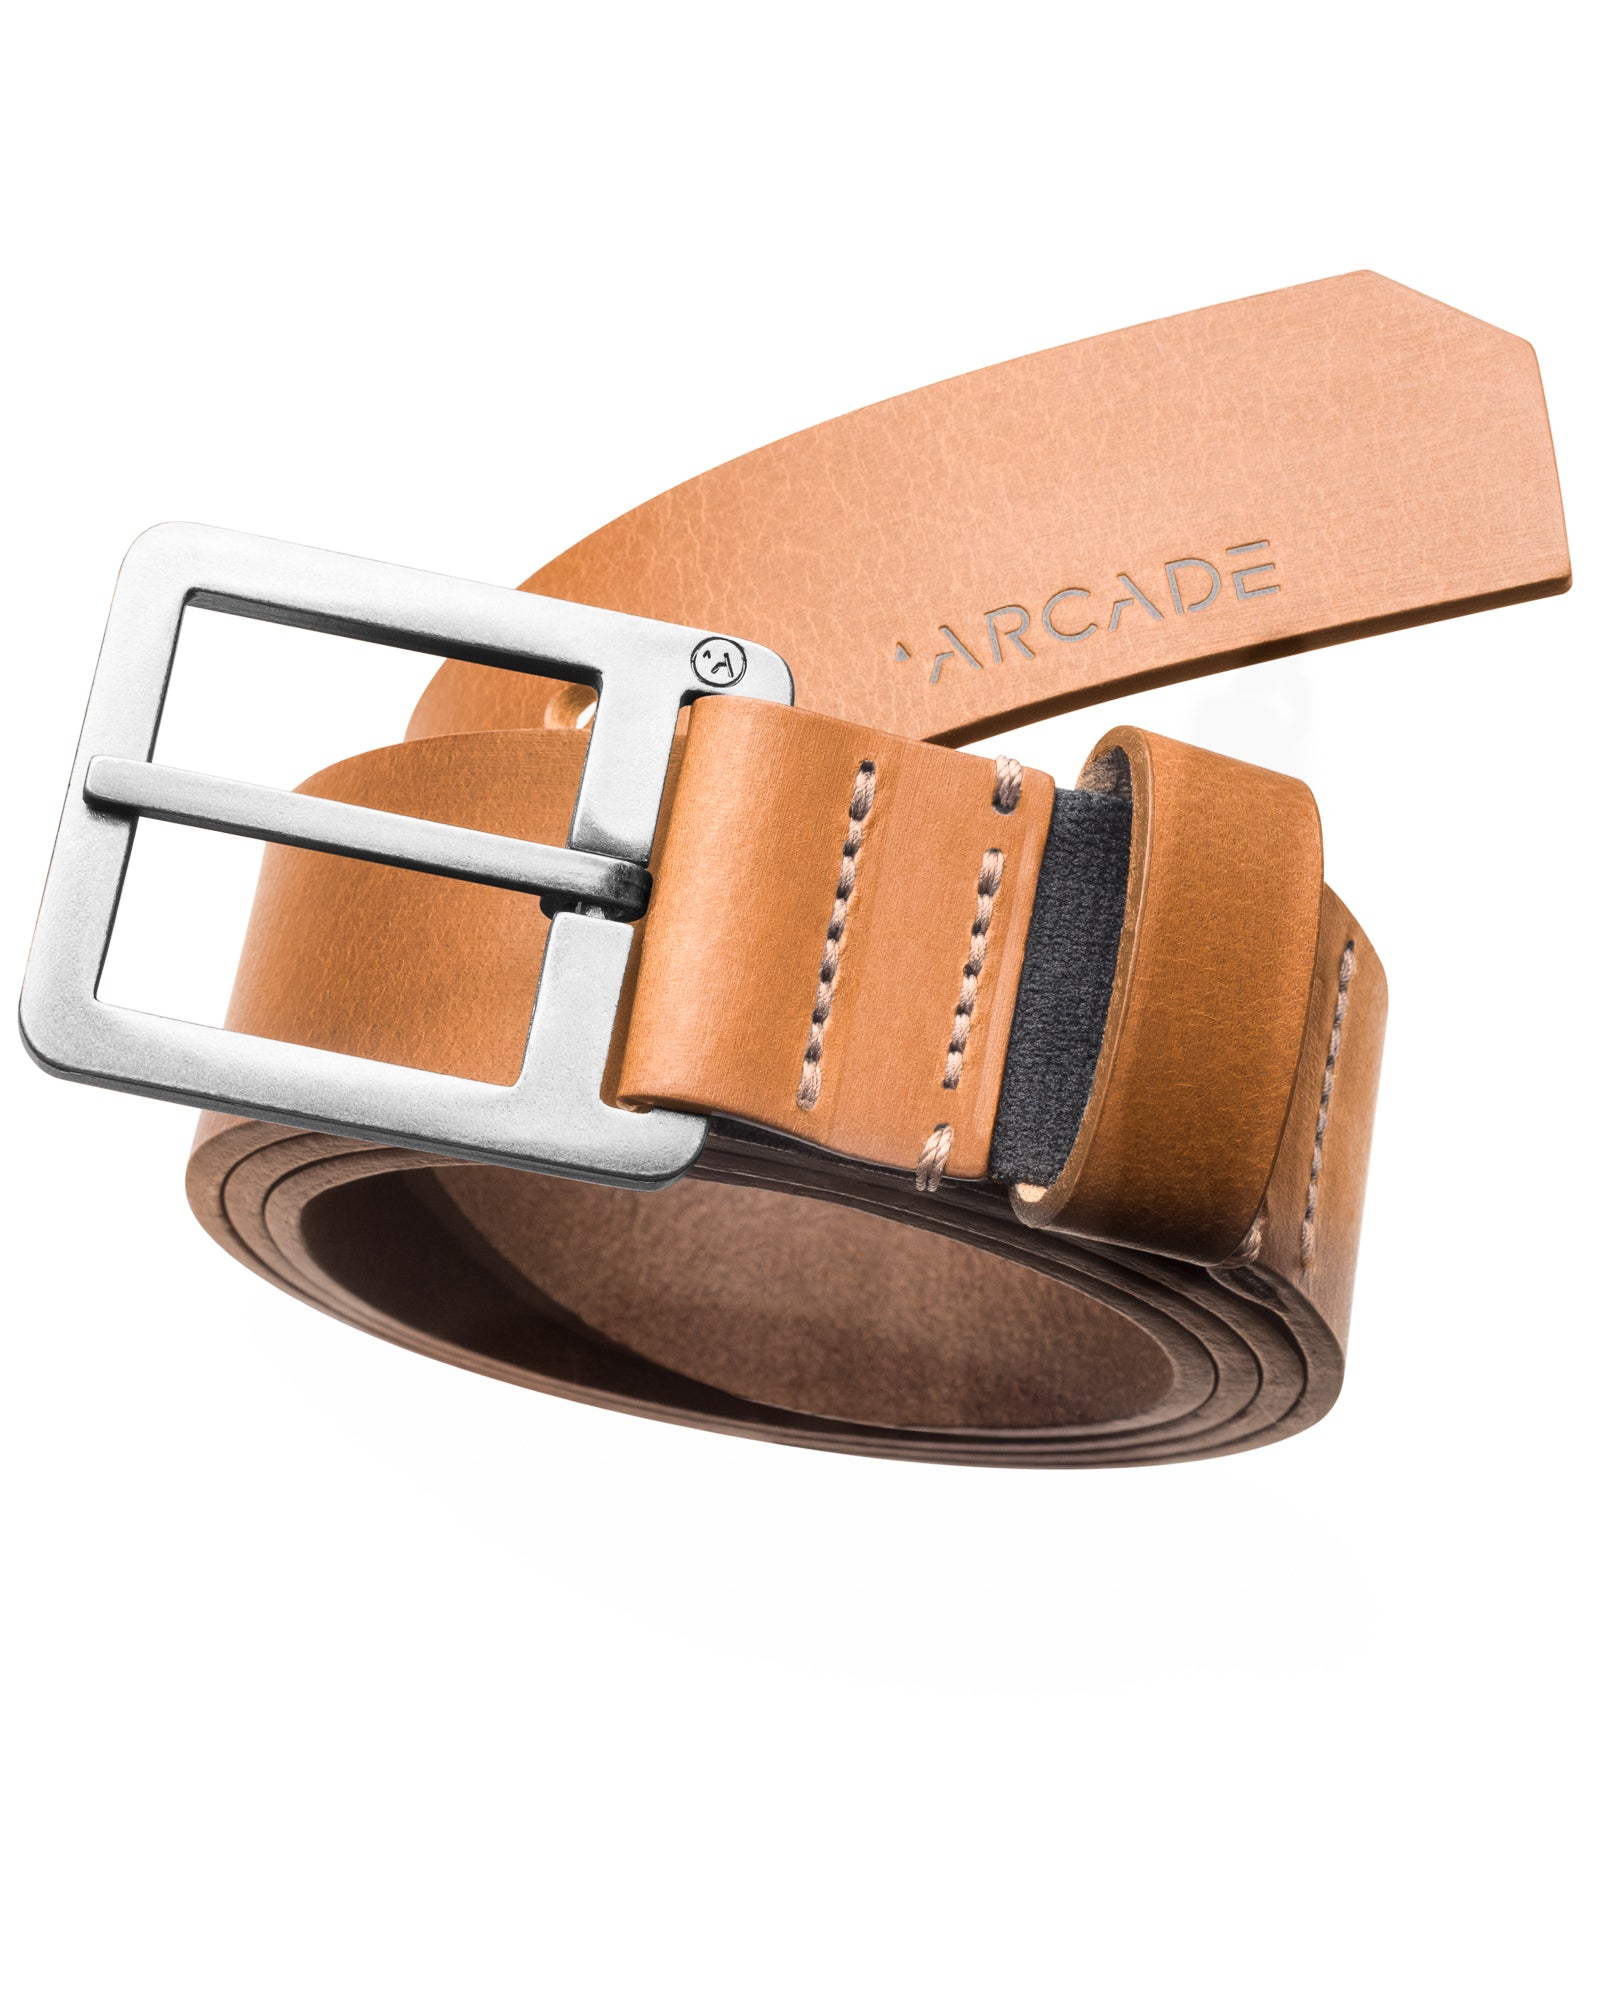 Arcade Leather Belts Padre Tan